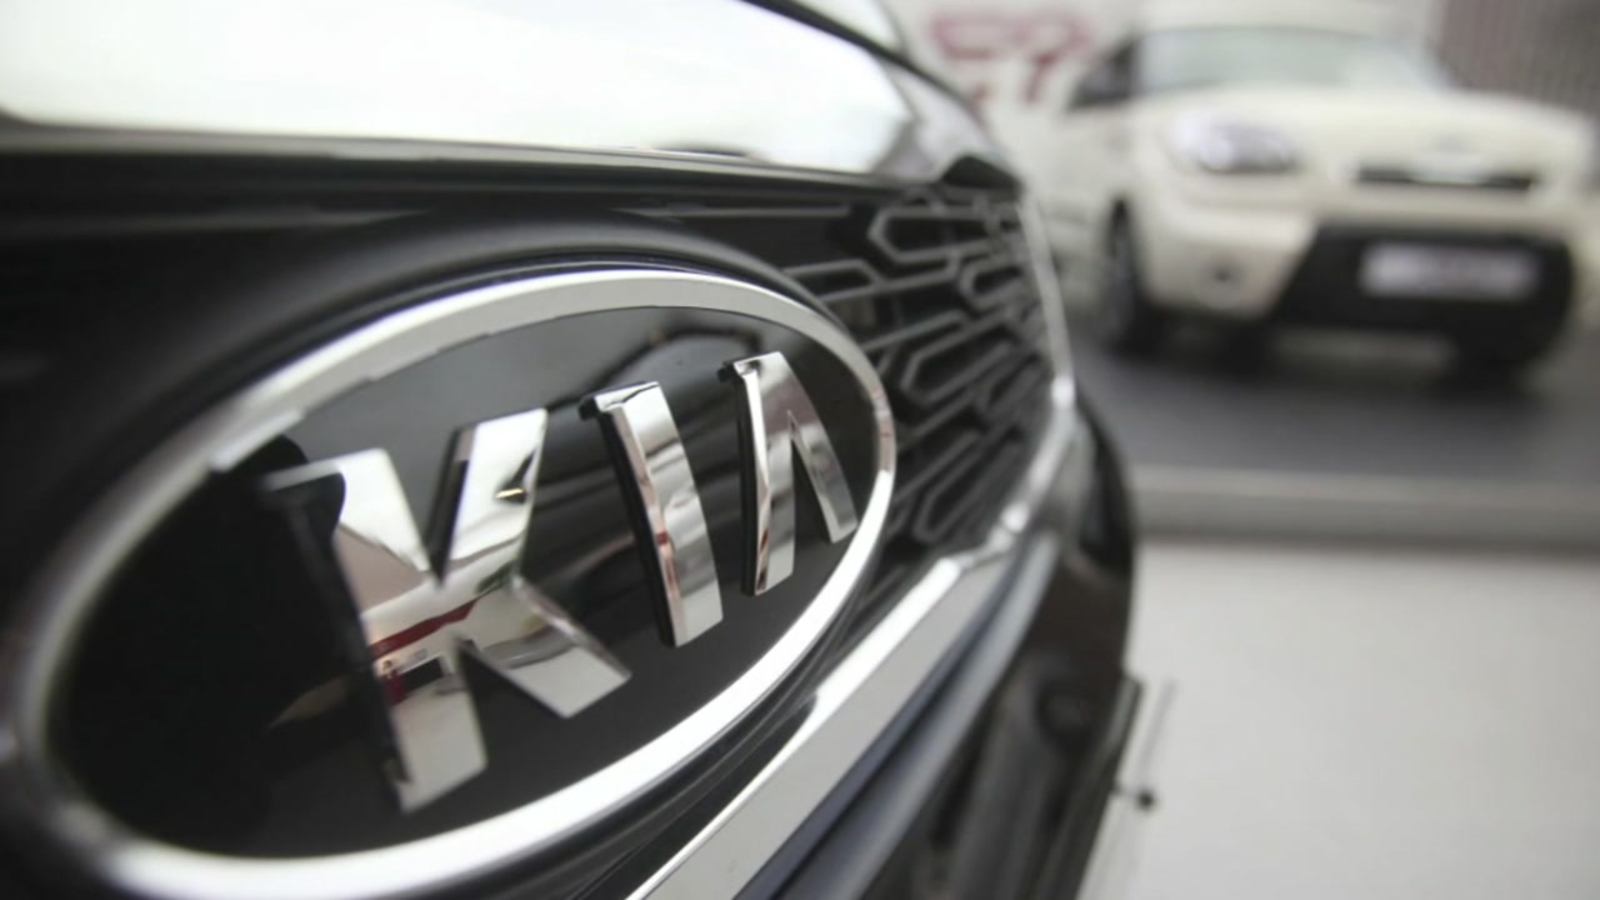 Hyundai Kia Recall Vehicles Due To Increased Fire Risk